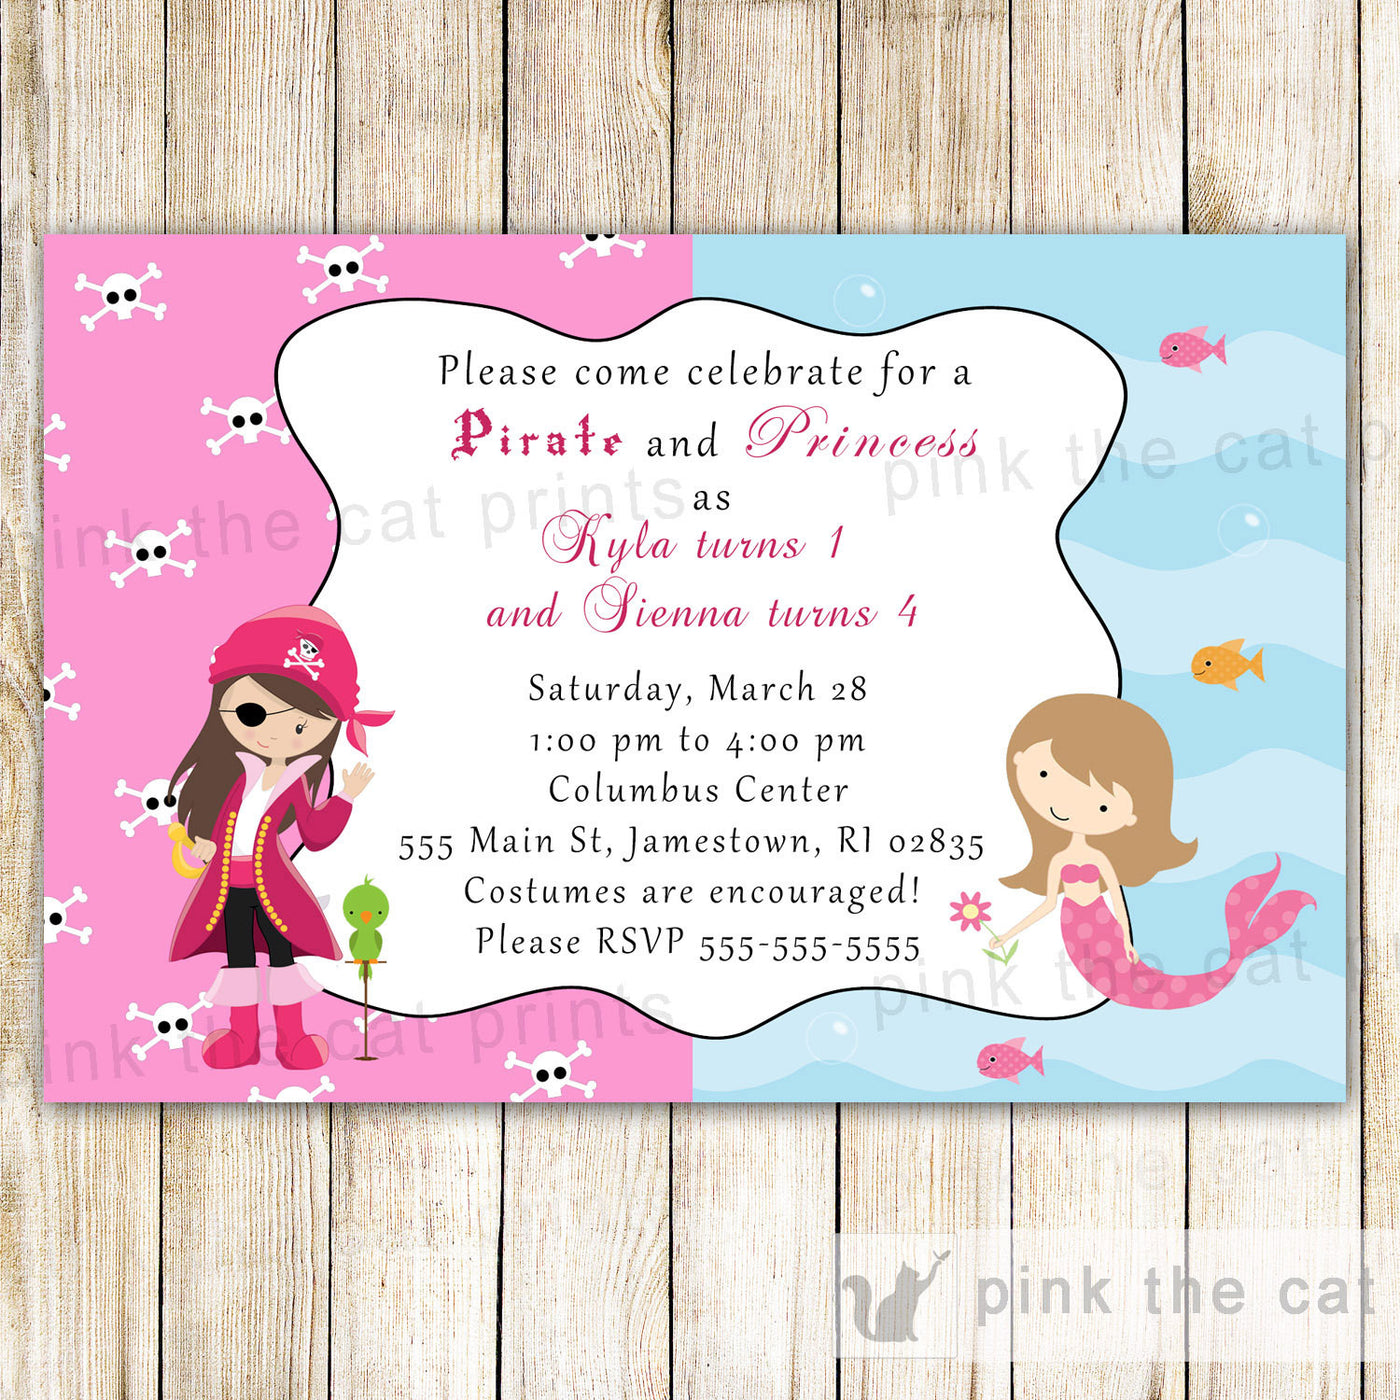 Pirate Mermaid Invitation Girl Birthday Party Pink The Cat